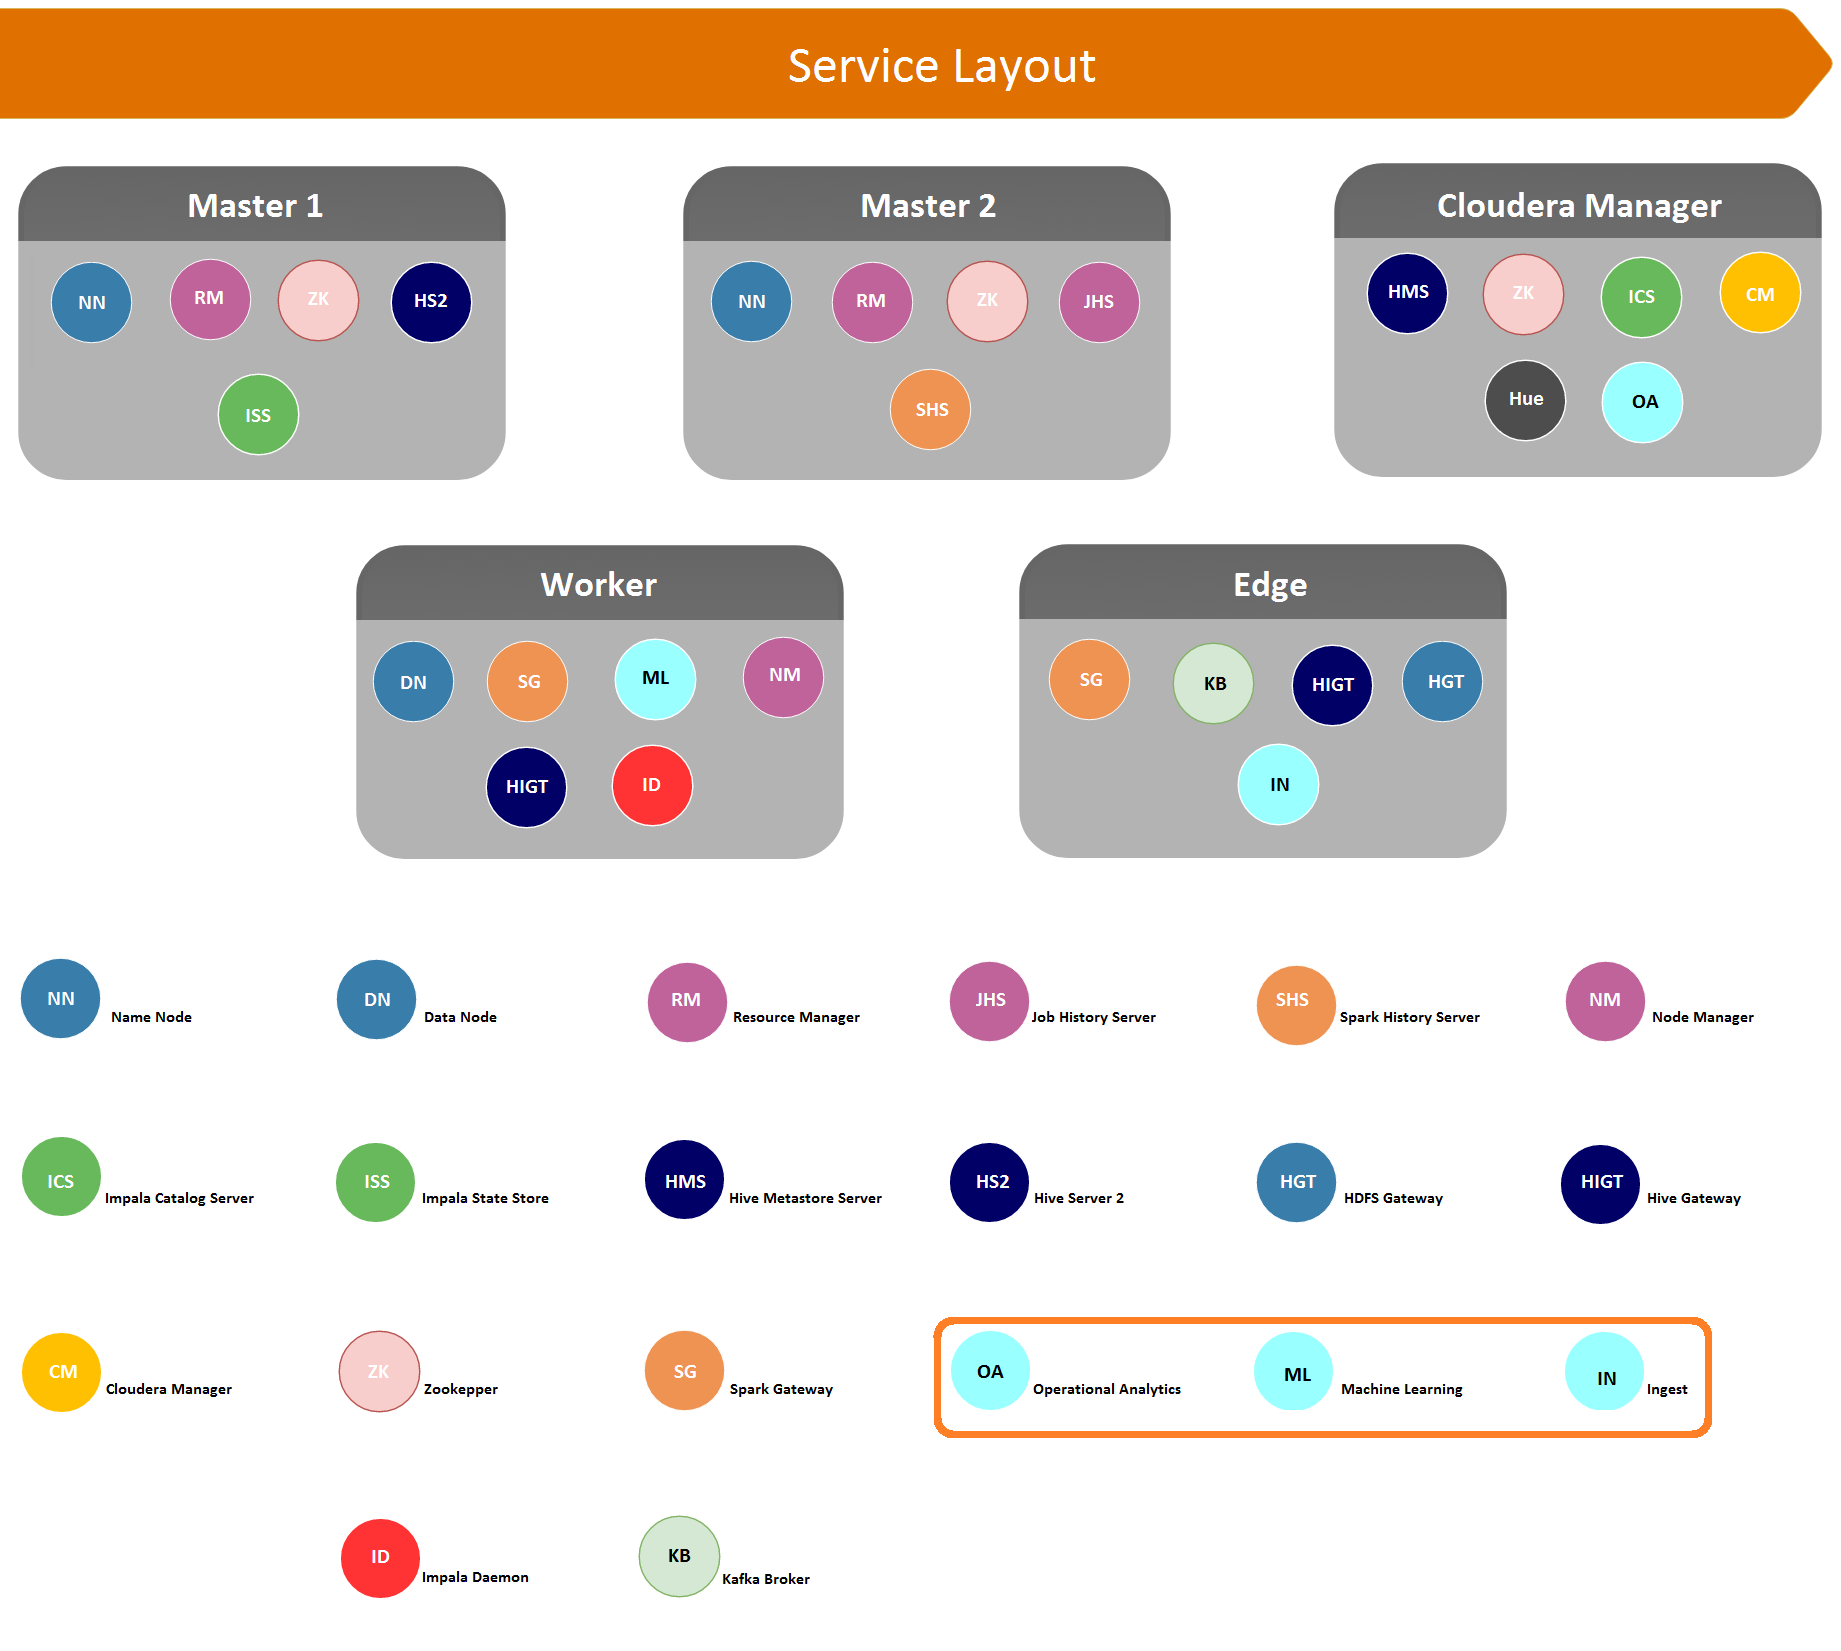 Service Layout